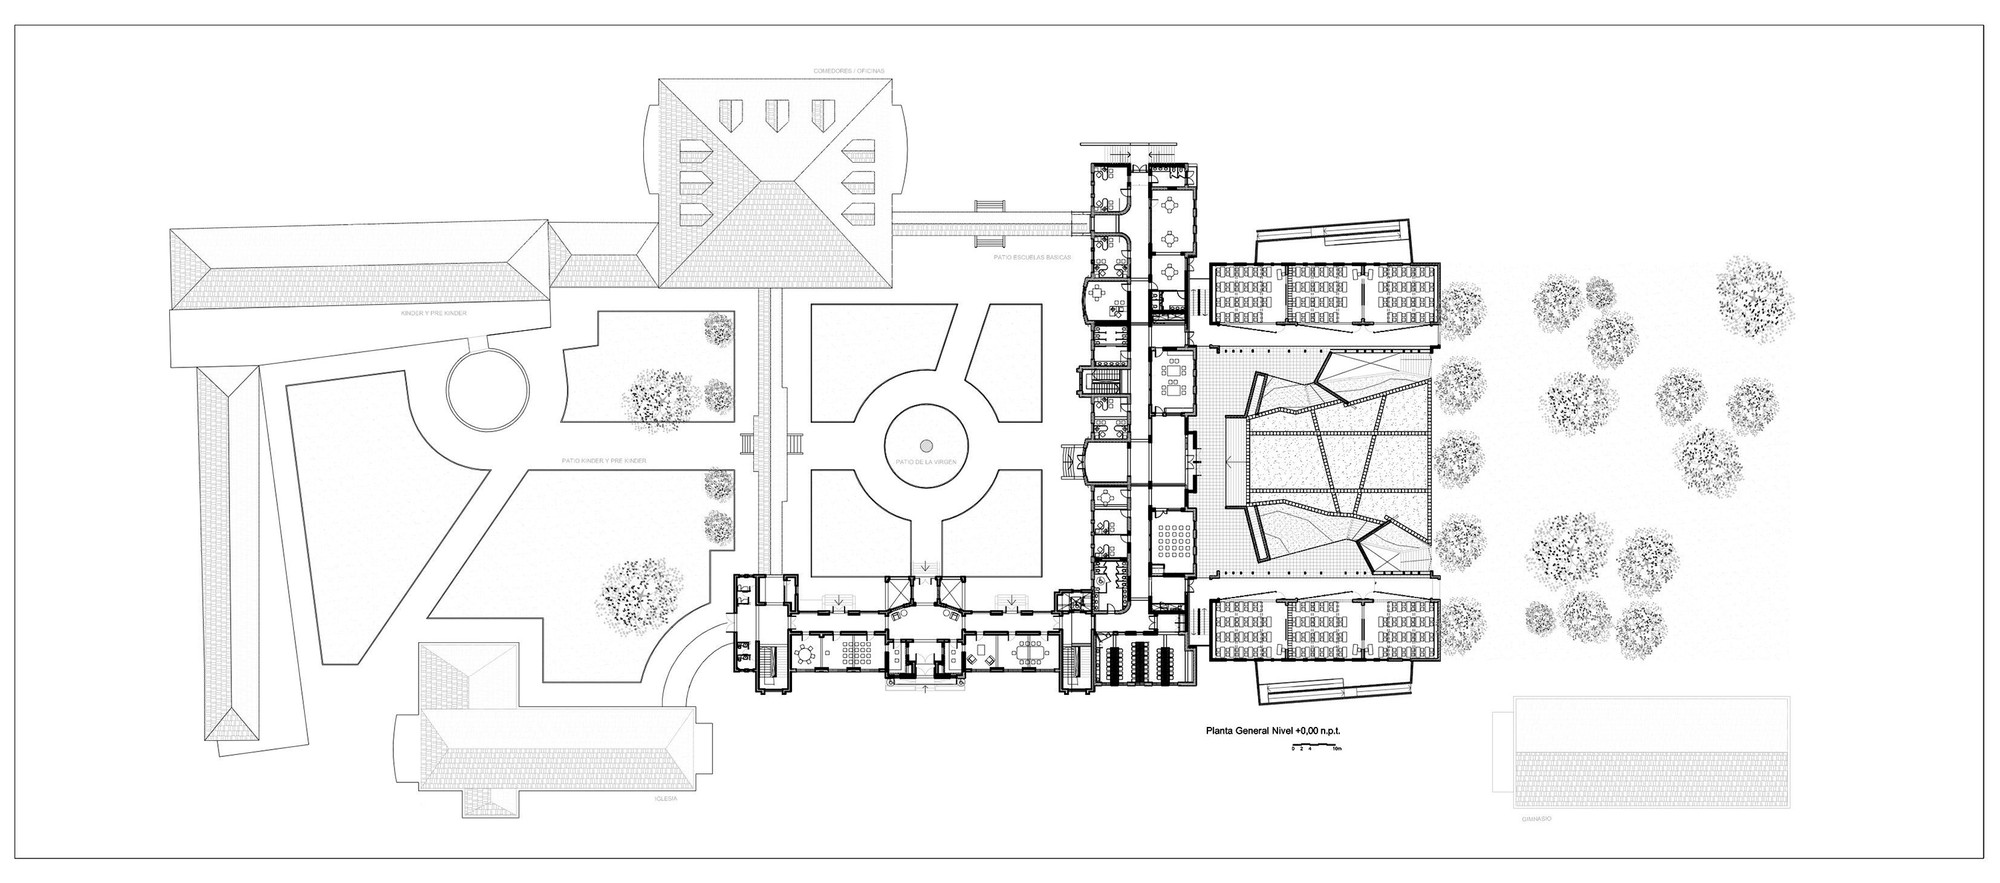 las nieves technical vocational school wrl arquitectos archdaily plan level 0 0mt